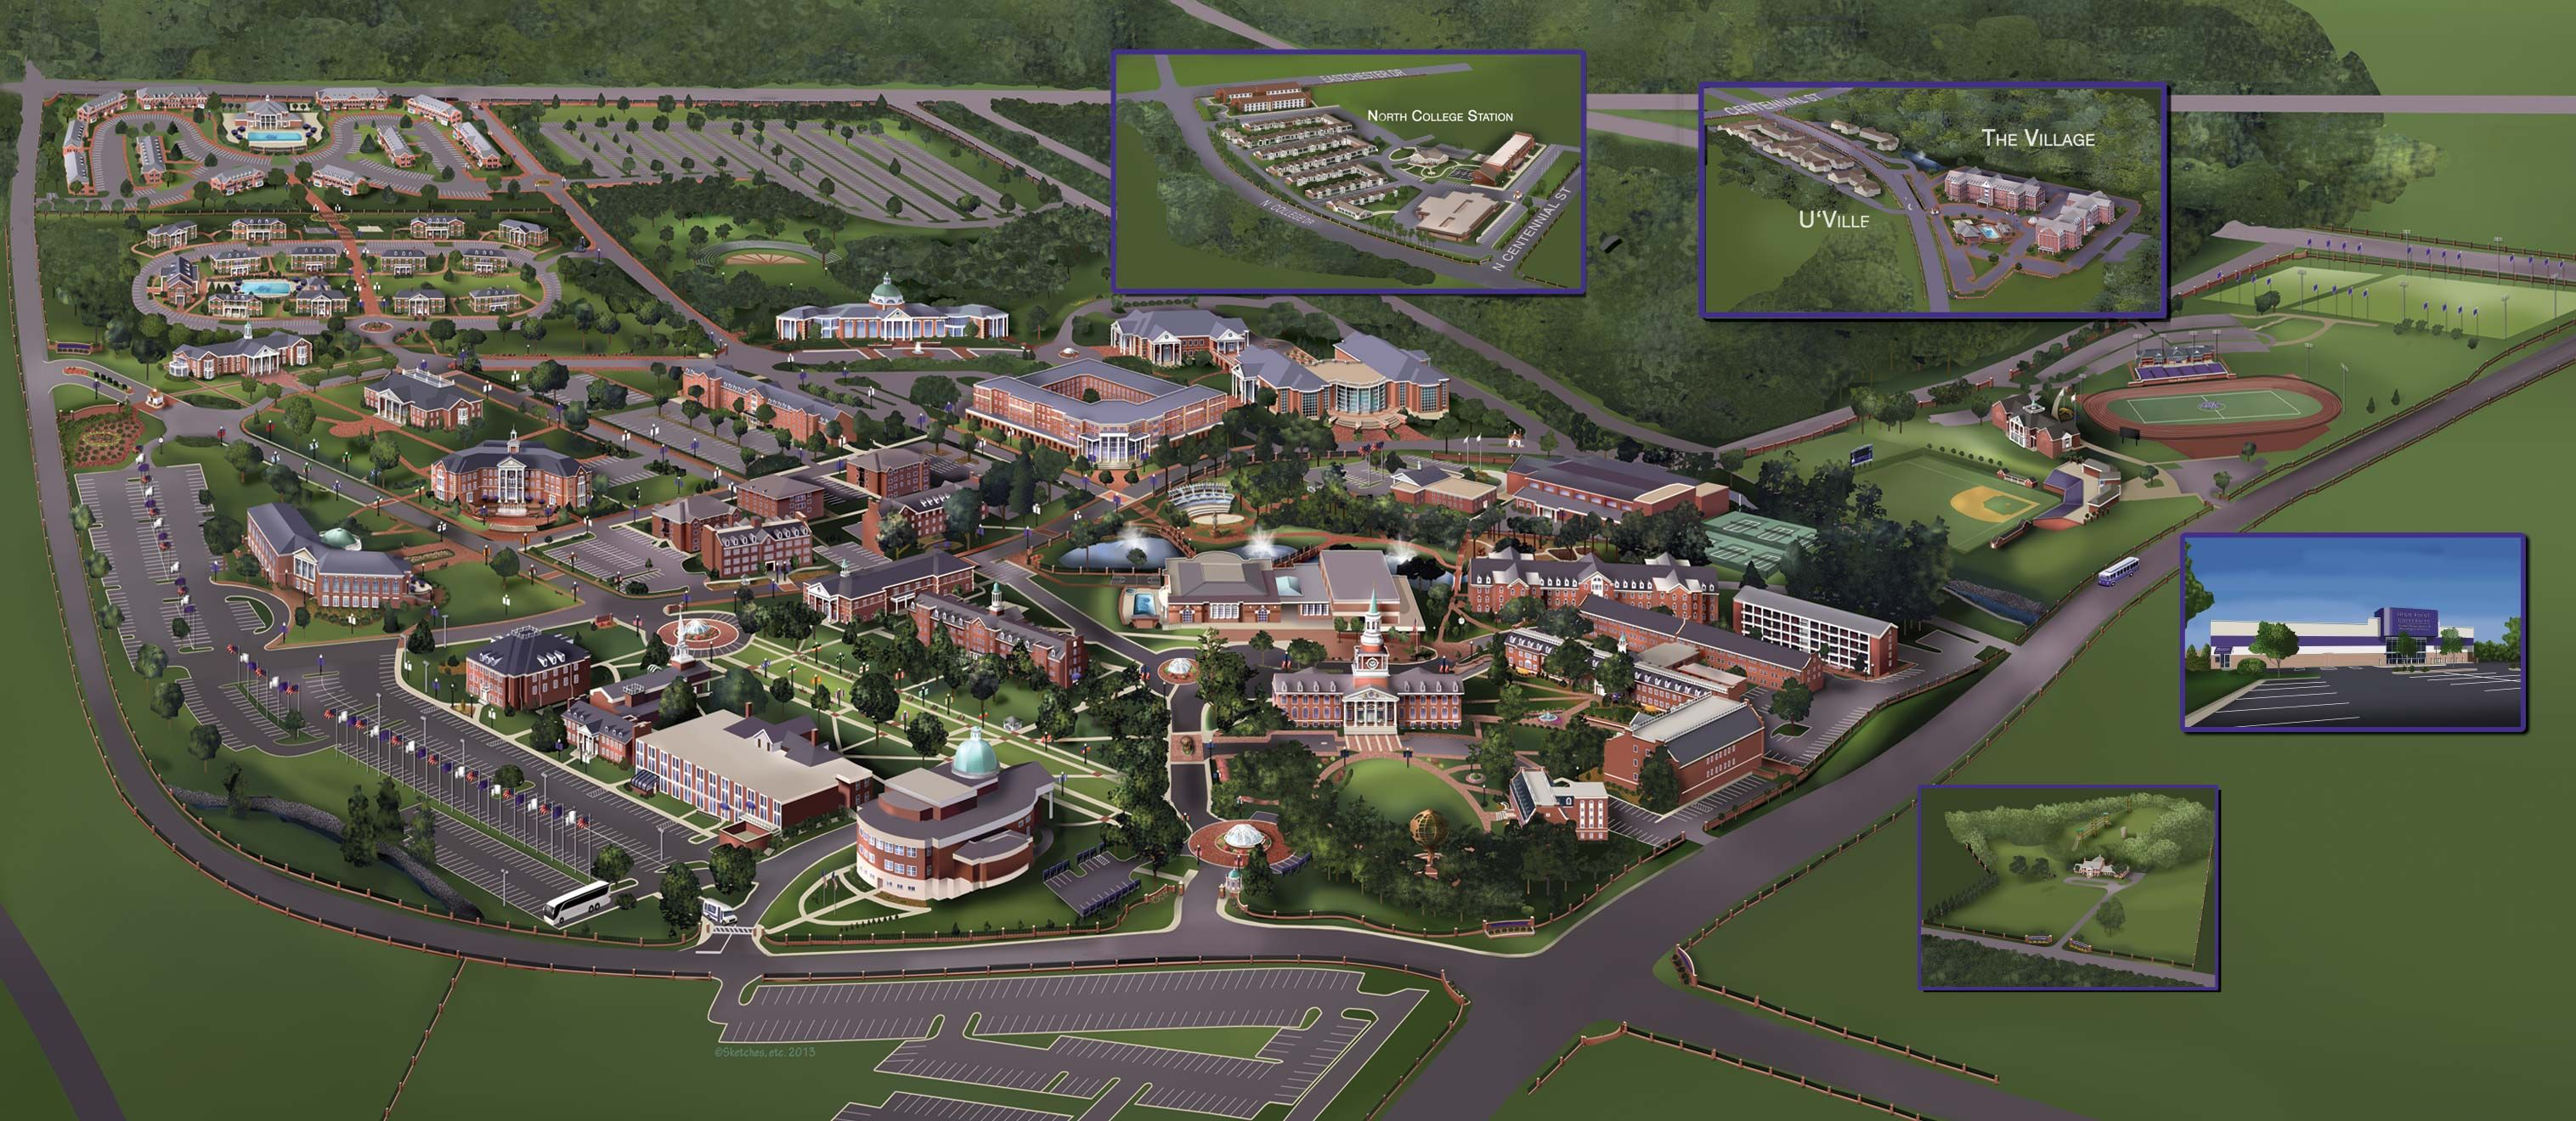 High Point University Campus Map Campus Map | College | Campus map, High point university, University